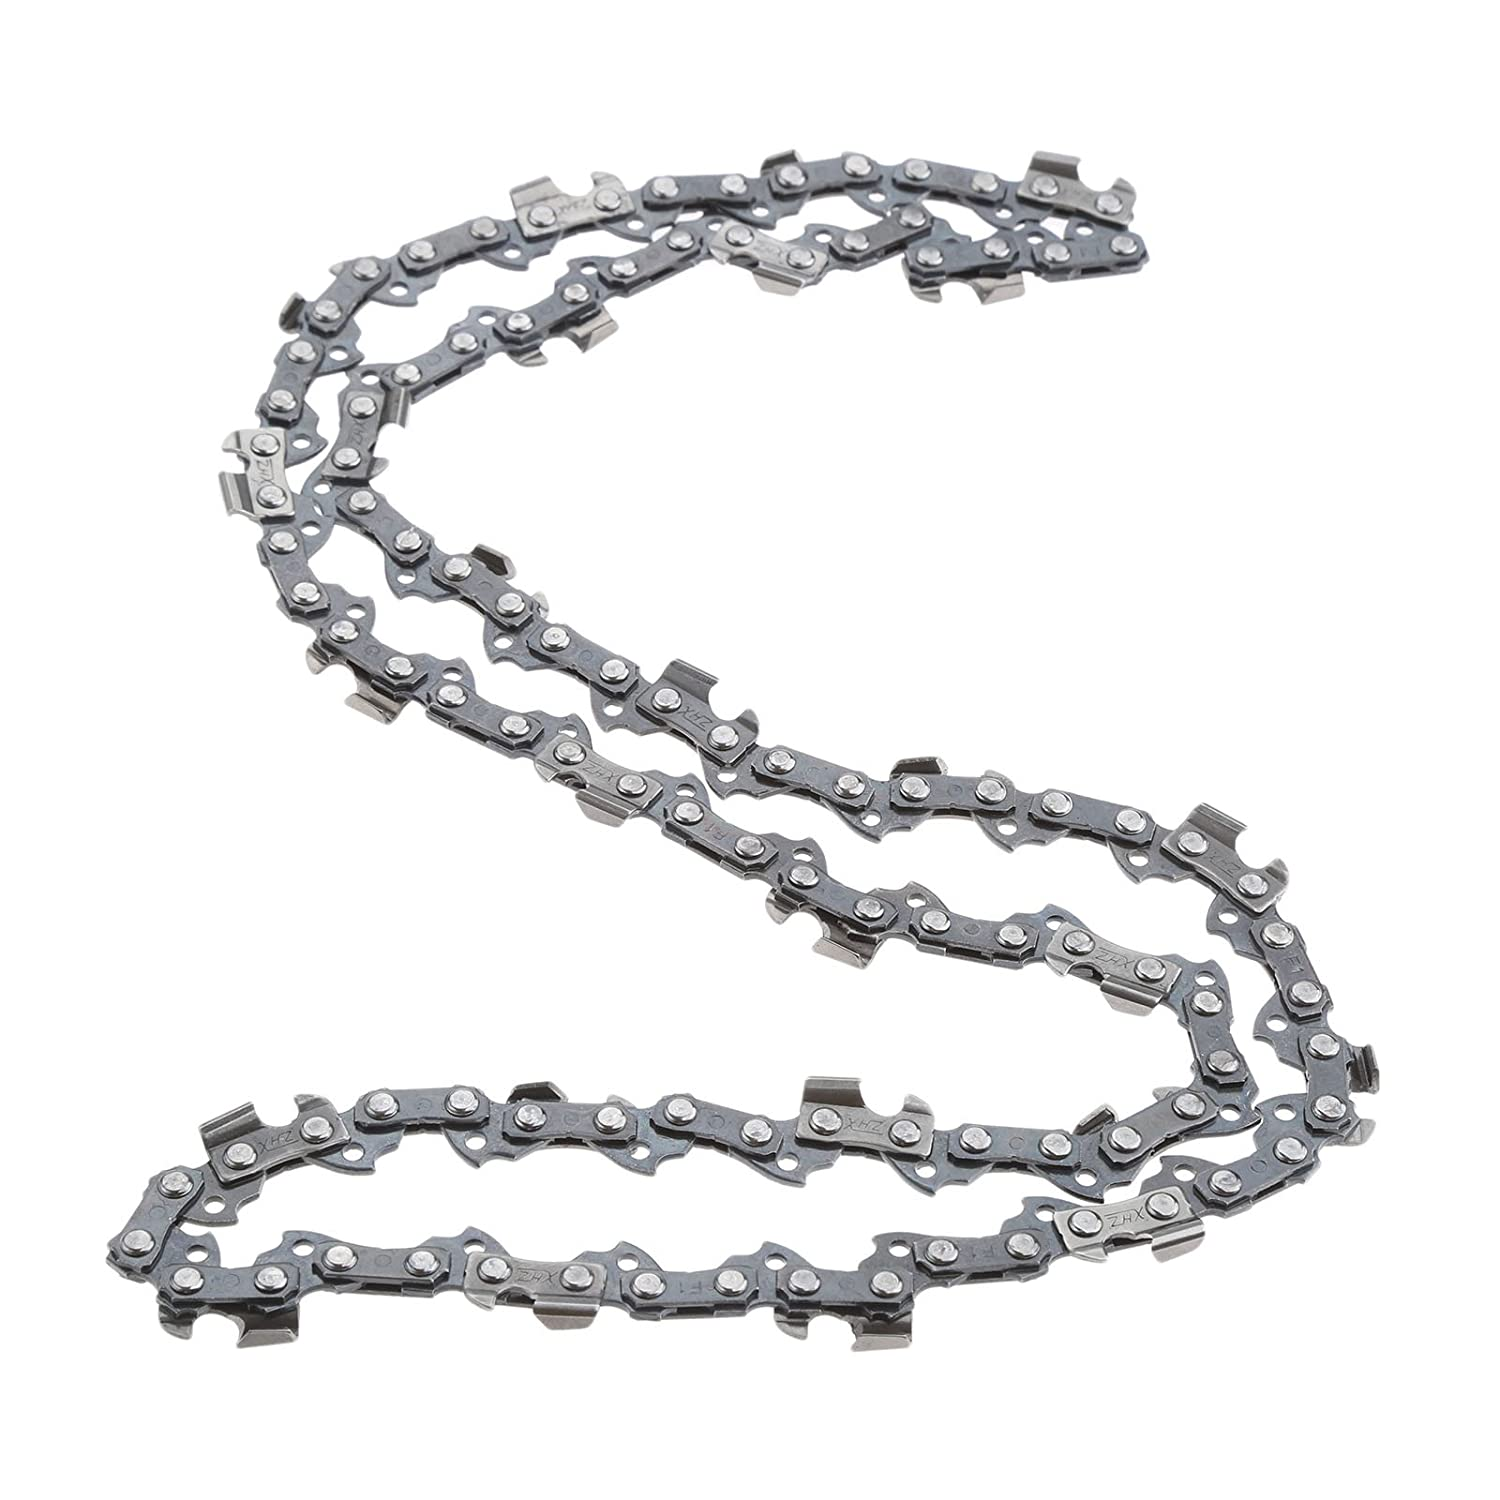 10 Sets Steel Chainsaw Chain Joiner Link for JOINING 325 058 Chain 1.5x0.5cm Hicello